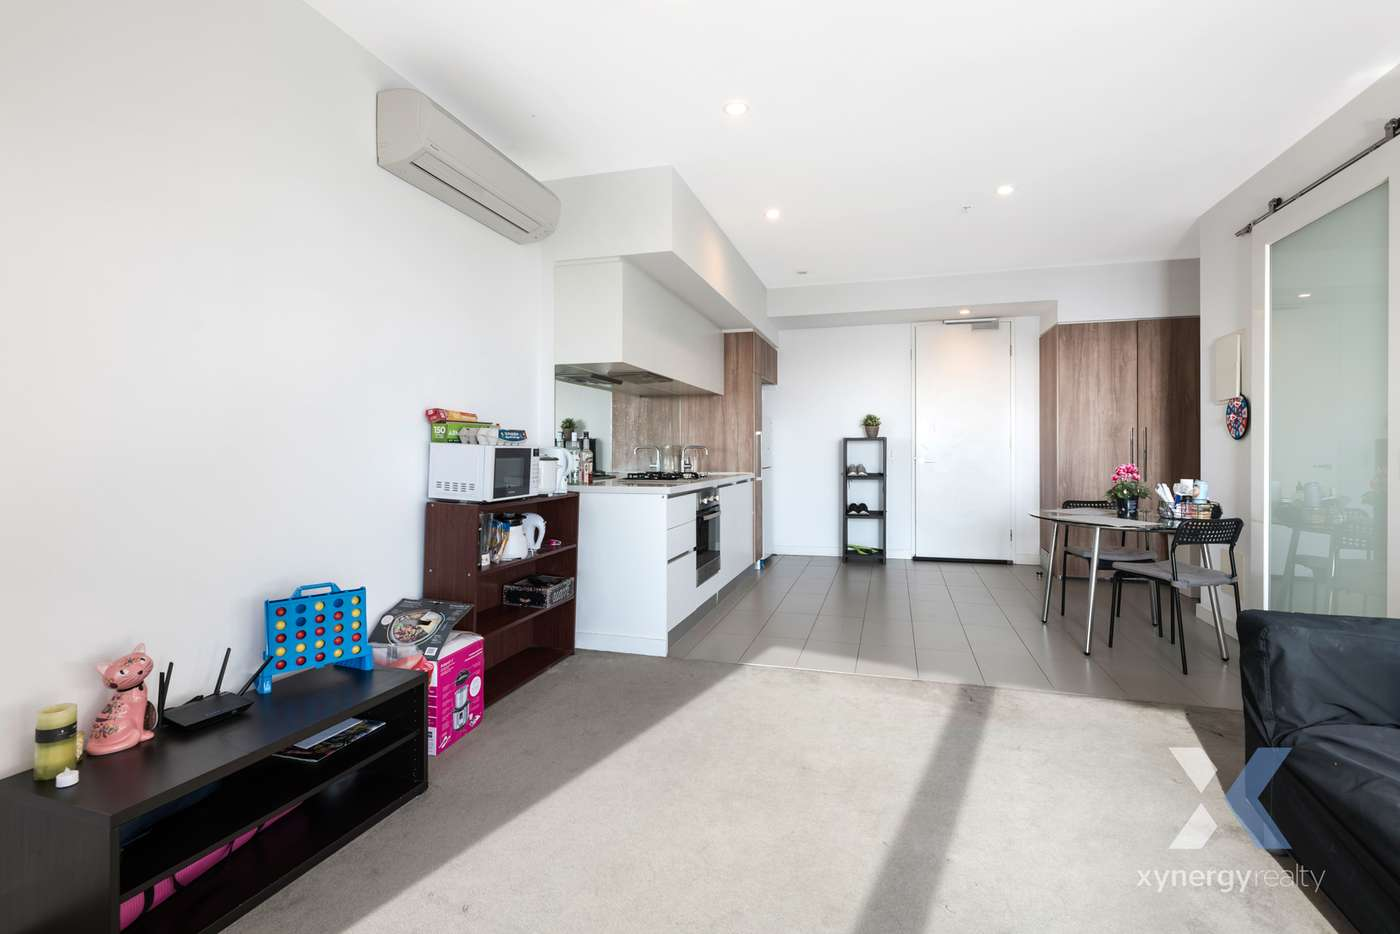 Fifth view of Homely apartment listing, 1805/35 Malcolm Street, South Yarra VIC 3141